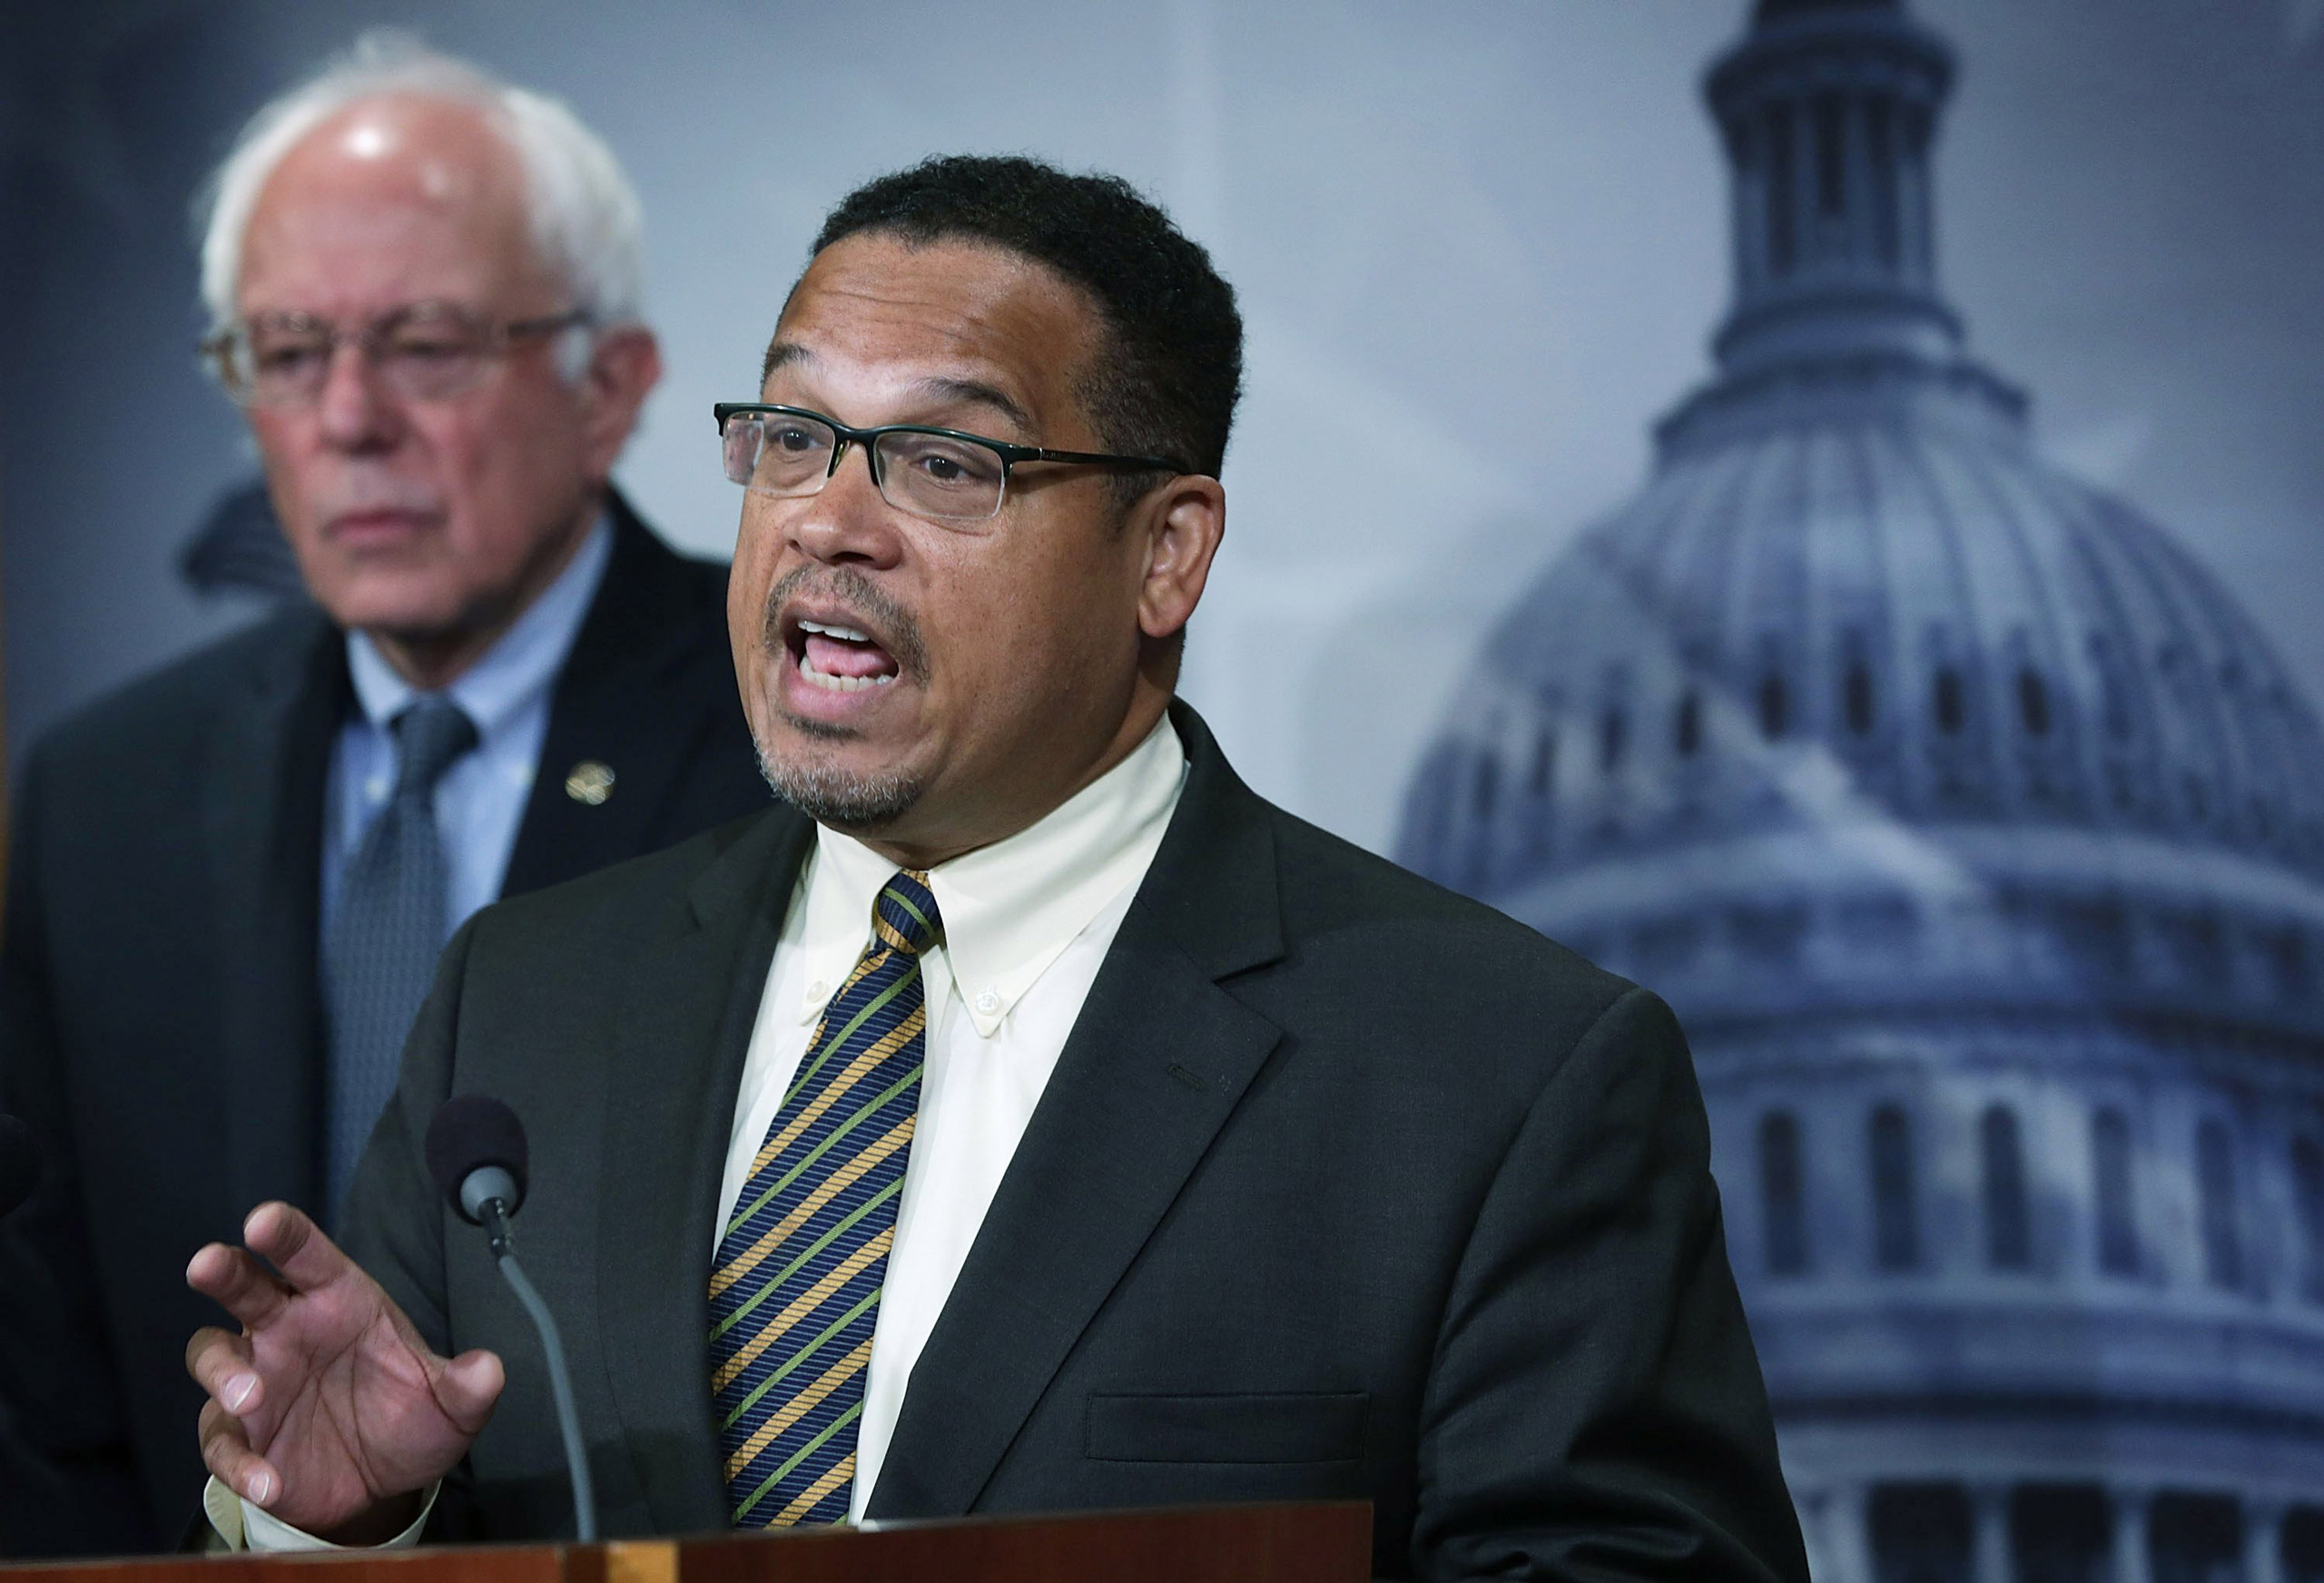 Sen. Bernie Sanders and Rep. Keith Ellison speak to members of the media during a news conference about private prisons on Capitol Hill in Washington on Sept. 17, 2015.